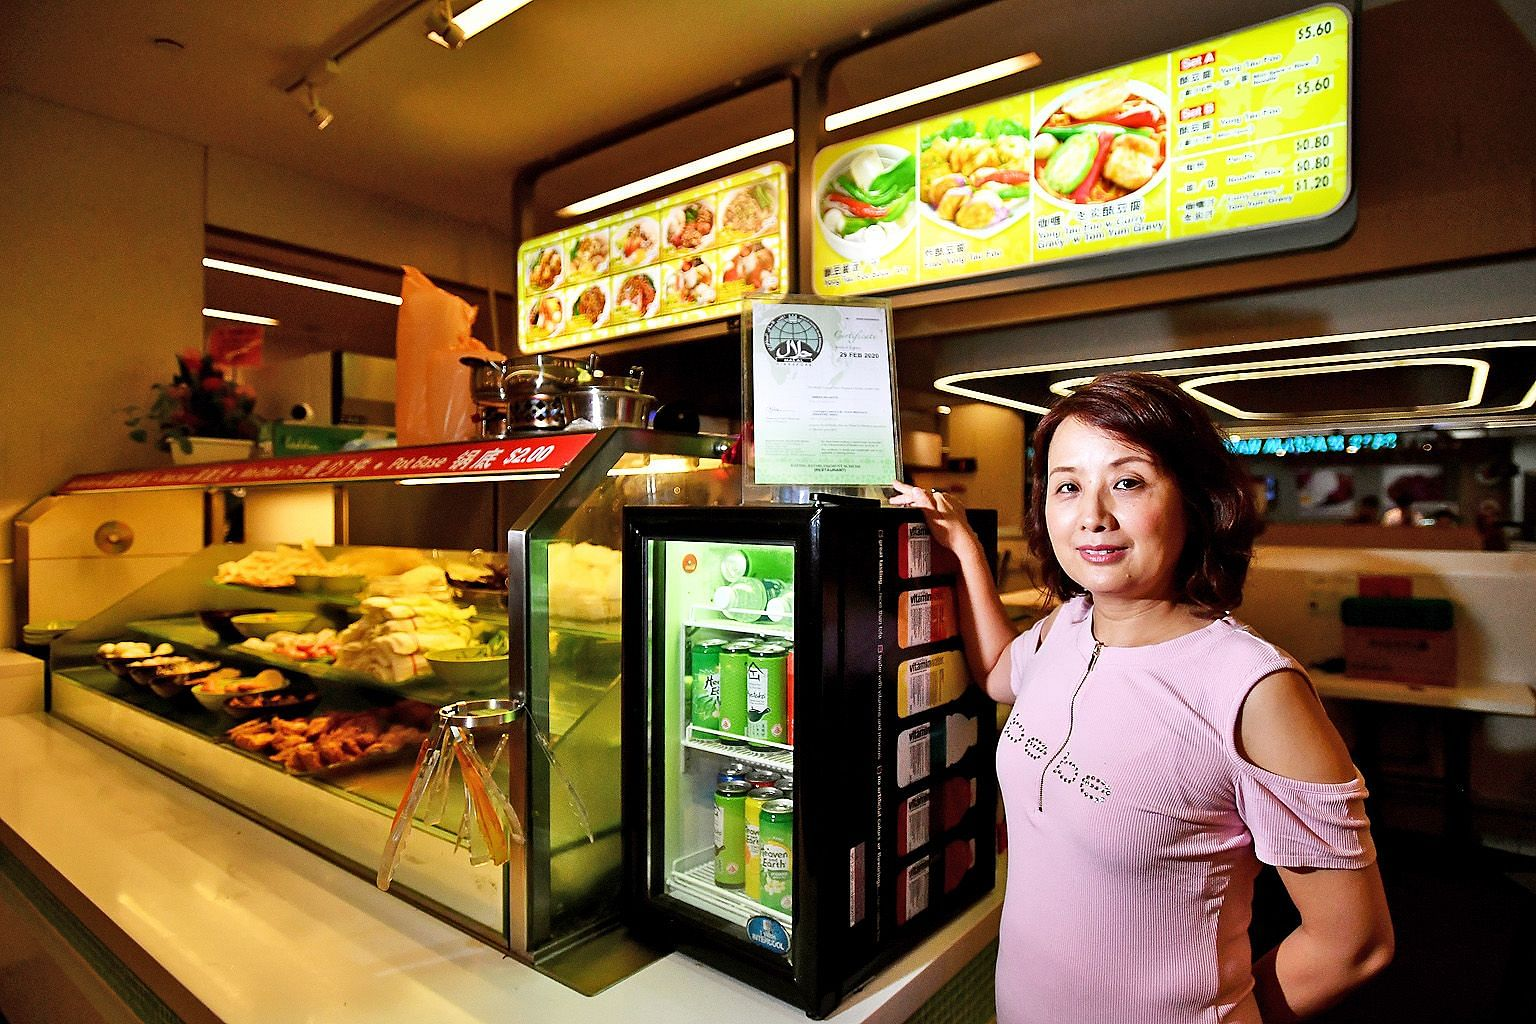 Ms May Liu, owner of halal-certified yong tau foo stall Green Delights at Westgate mall. False online claims last year led to a fall in sales, although a probe by Muis found the stall followed proper food-handling procedures.